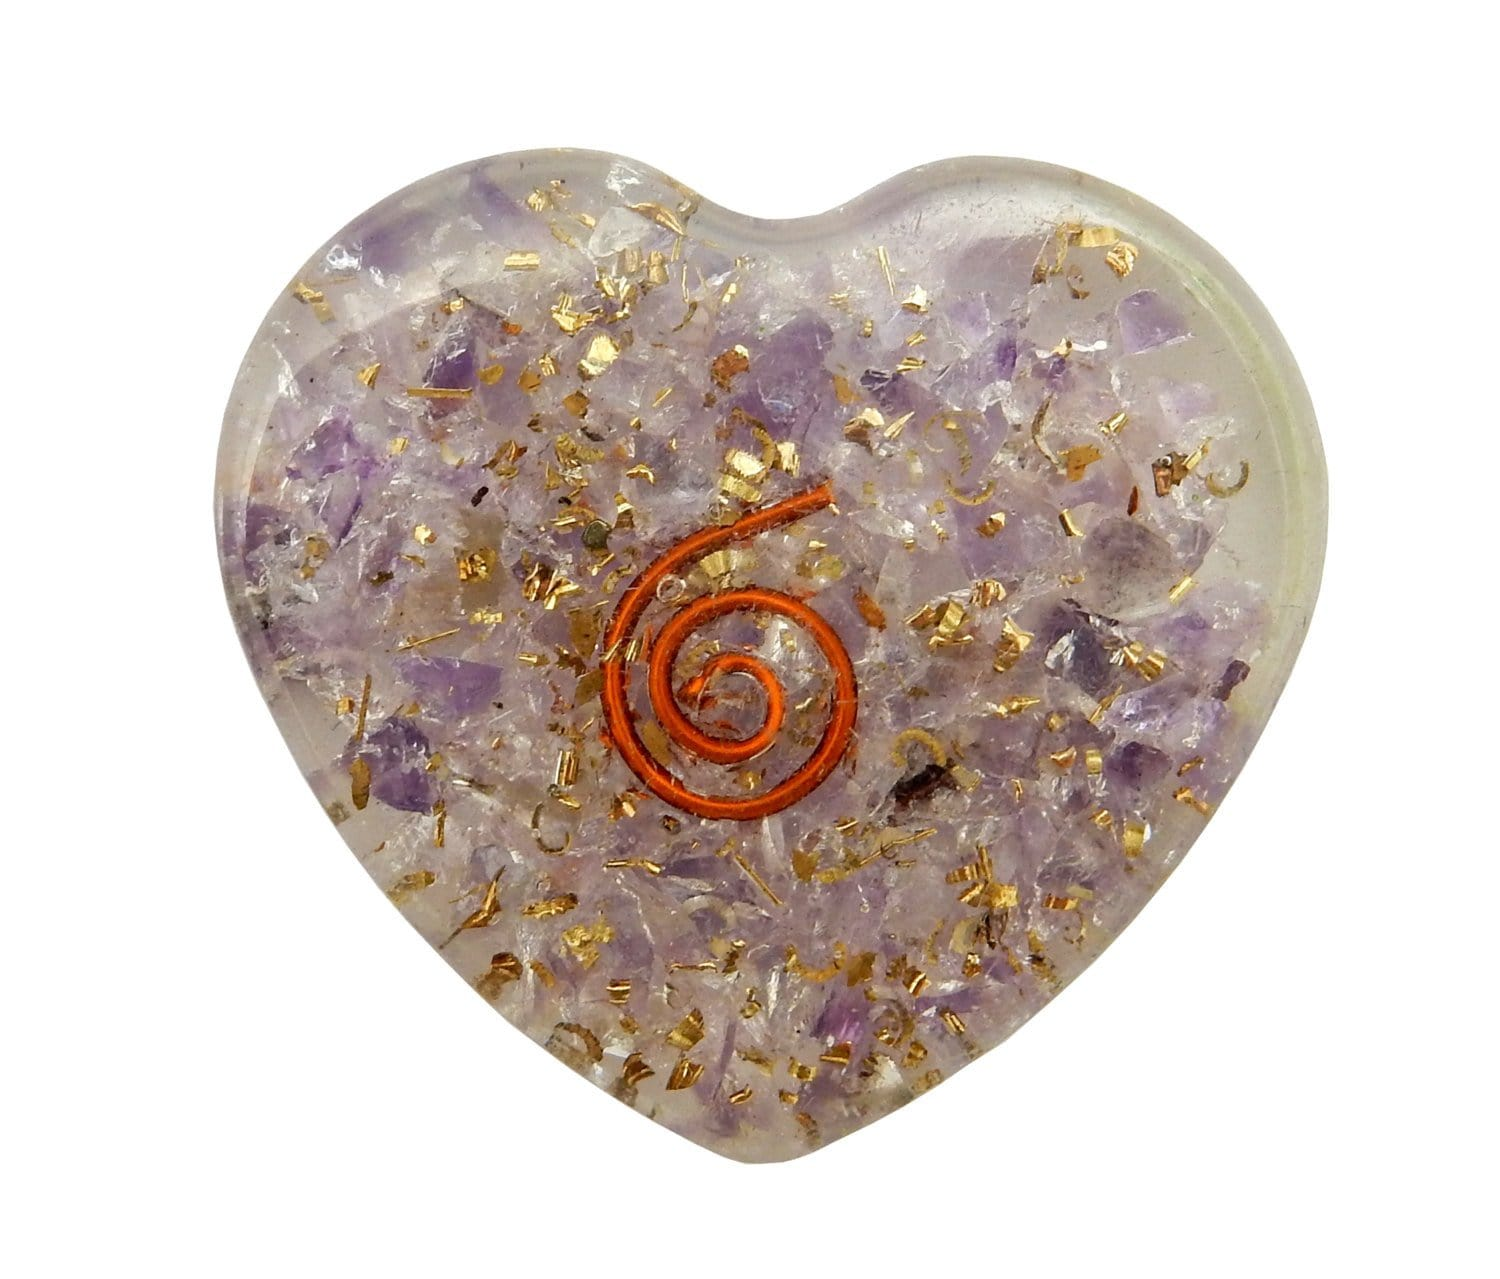 Orgone - Orgone Hearts Amethyst Rose Quartz Crystal - Set Of 3 Orgone Heart Piece - Boho Style - Resin Heart With Pieces Of Stones (RK145B3)